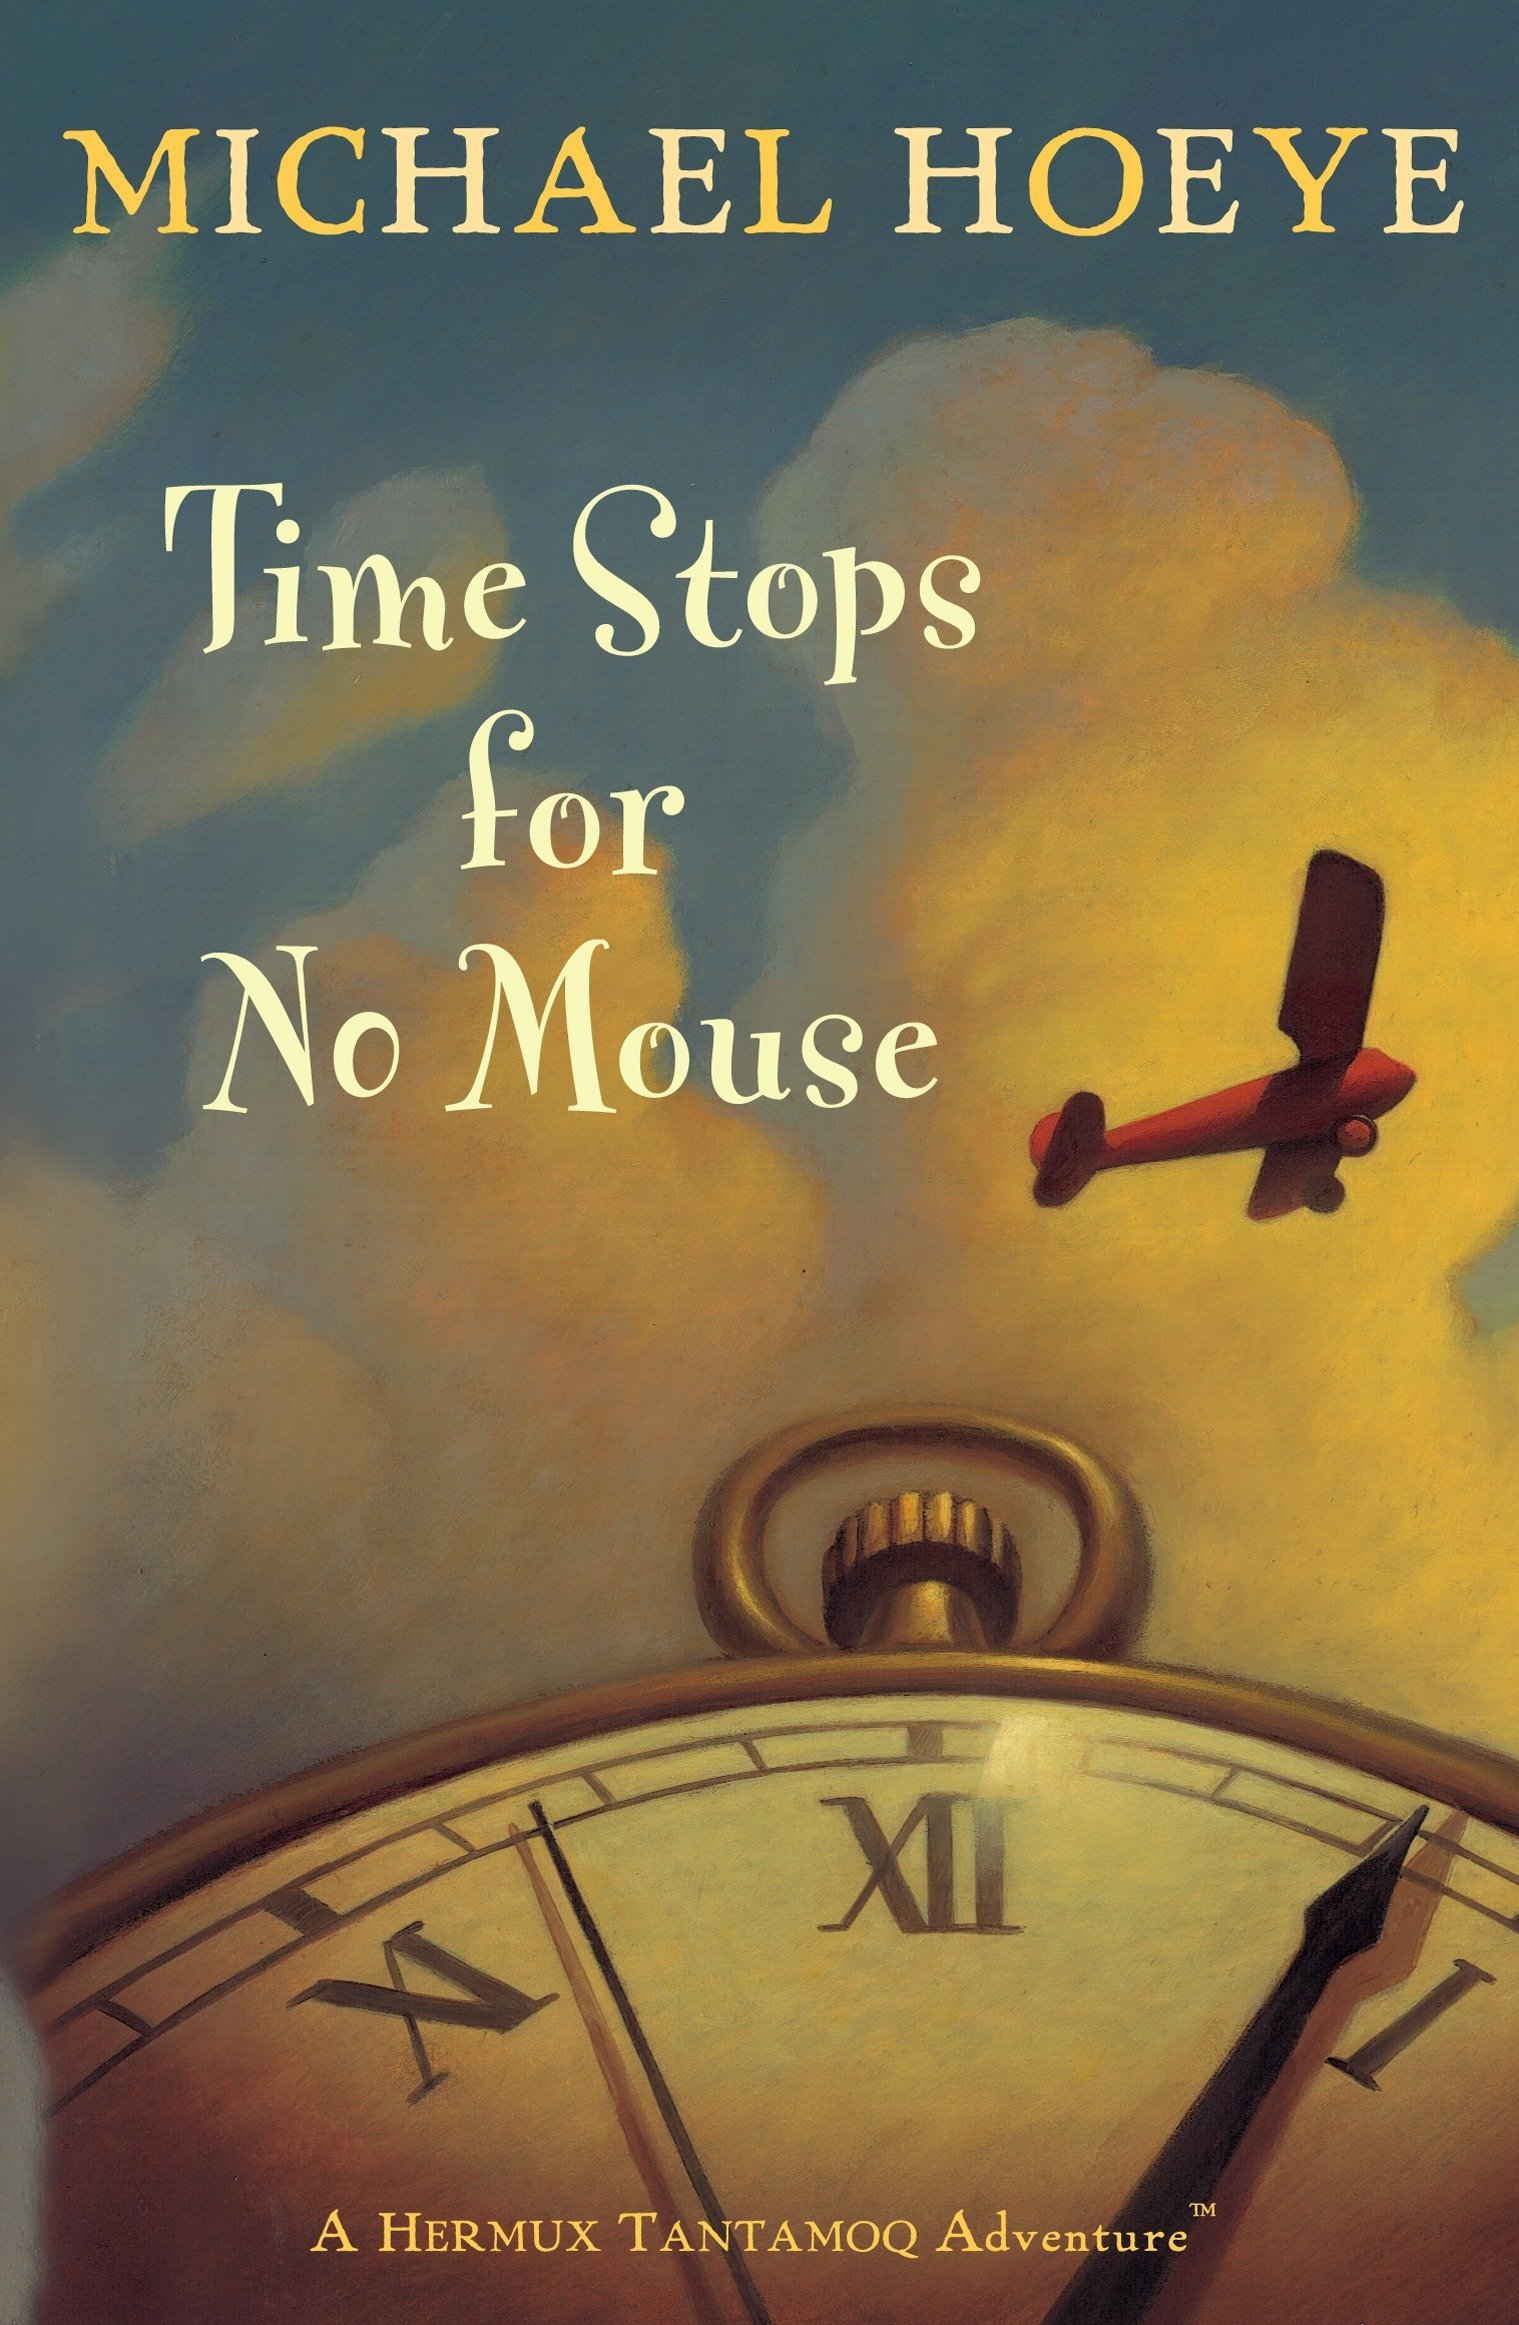 Amazon.com: Time Stops for No Mouse (Hermux Tantamoq Adventures  (Paperback)) (8601423058467): Michael Hoeye: Books